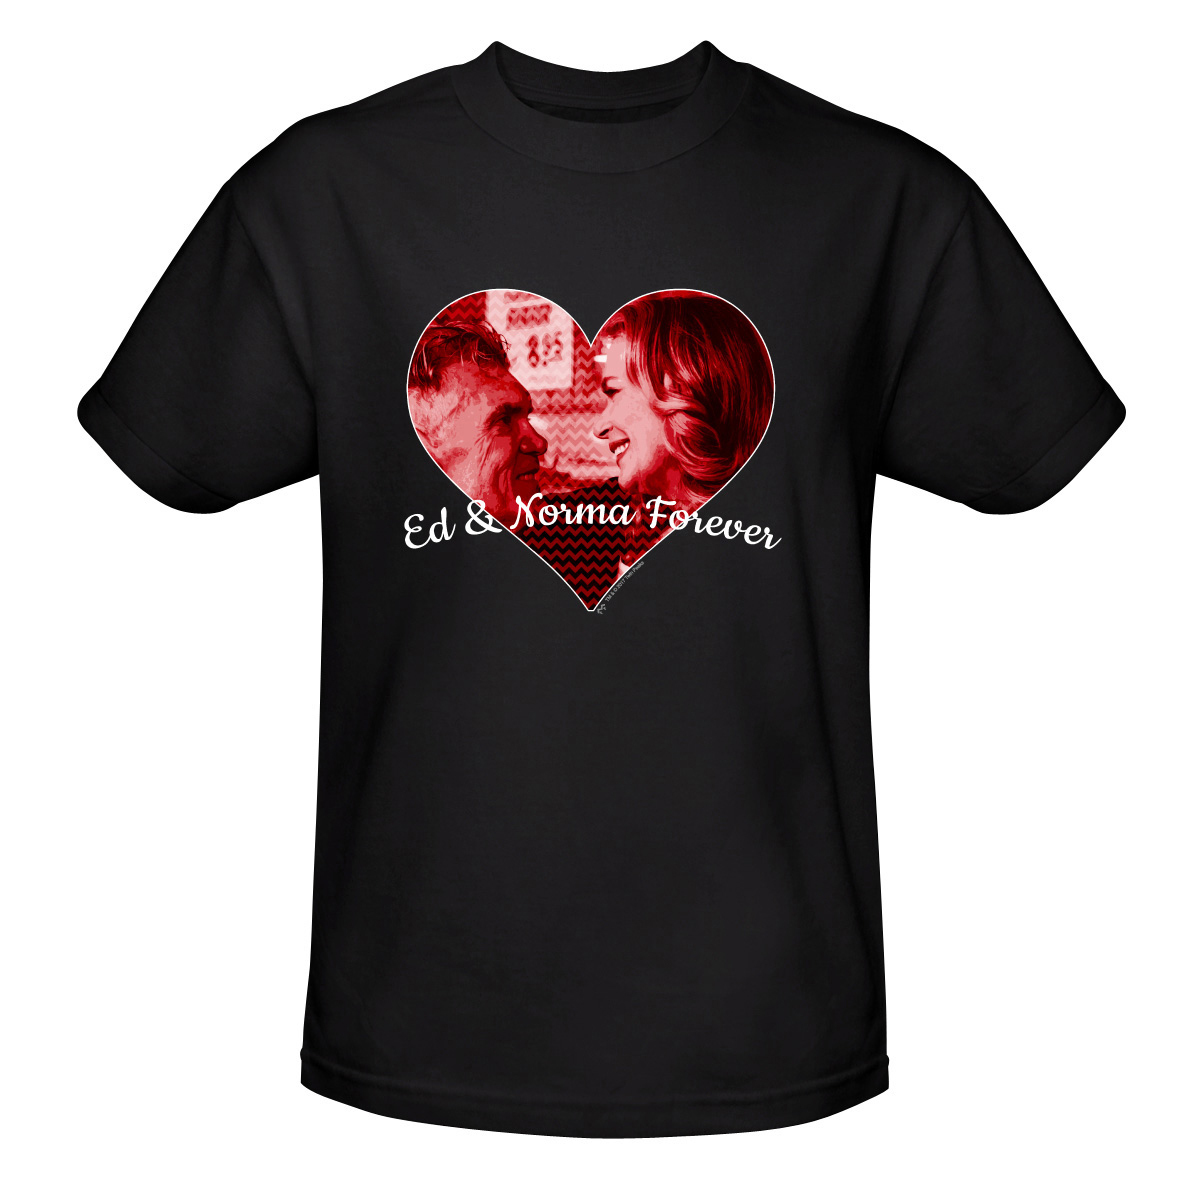 UPC 603307972935 product image for Twin Peaks Ed and Norma T-Shirt - Small - Black | upcitemdb.com